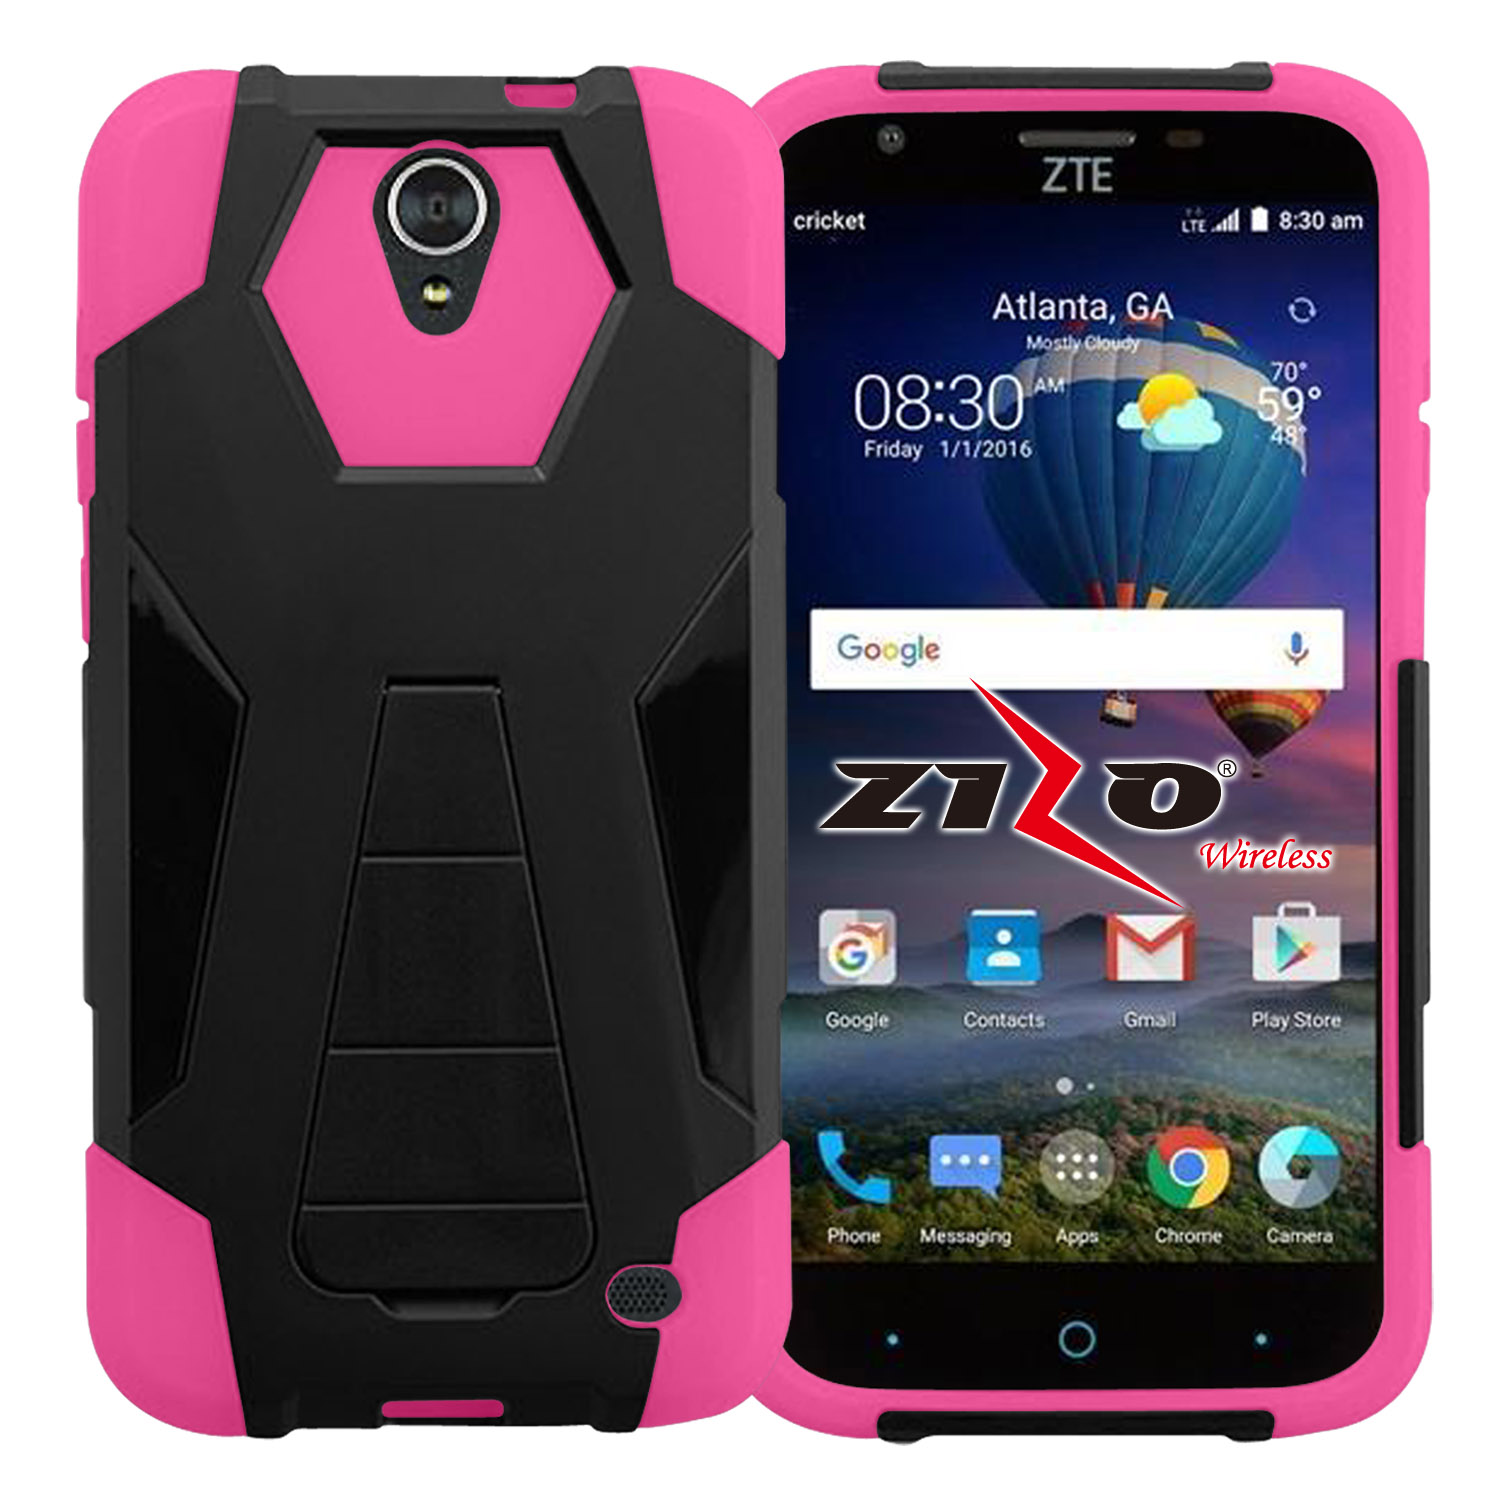 Zizo Hybrid Turbo Cover For ZTE Sonata 3 Chapel Z831 Prestige N9132 Avid Plus Z828 Heavy Duty Dual Layer Rugged Phone Protective Case w/ Kickstand